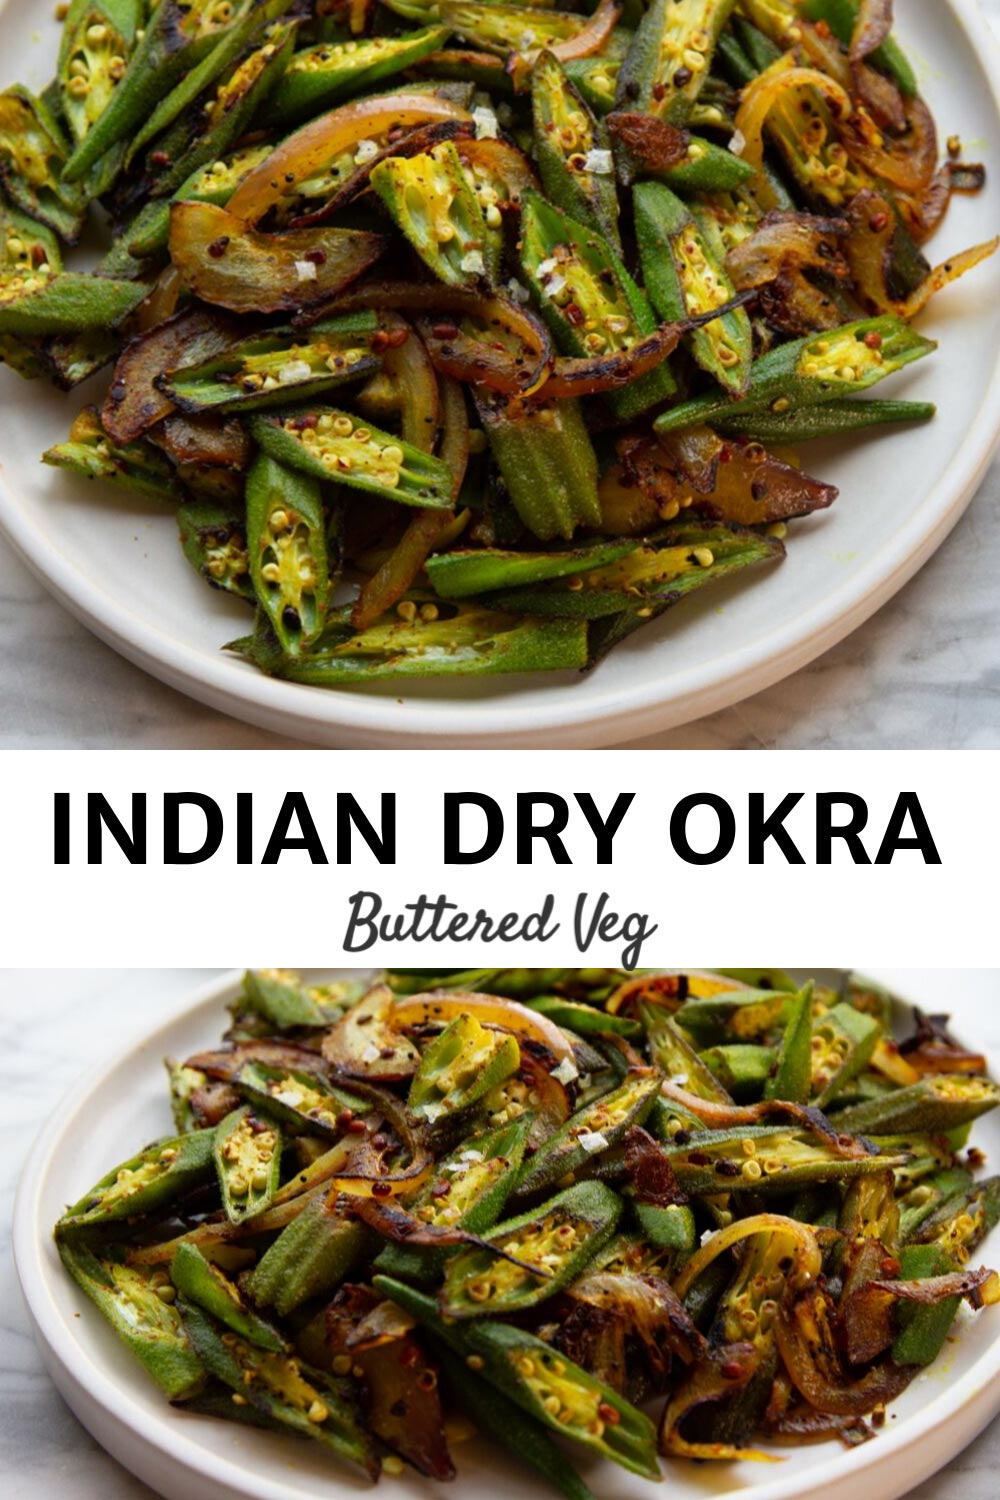 A dry Indian okra side dish recipe seasoned with turmeric and red chilis, plus three tricks for eliminating okra slime, how to buy okra, and tips for cooking okra. #okra #indian #indianrecipe #sidedish #dinnerside #butteredveg